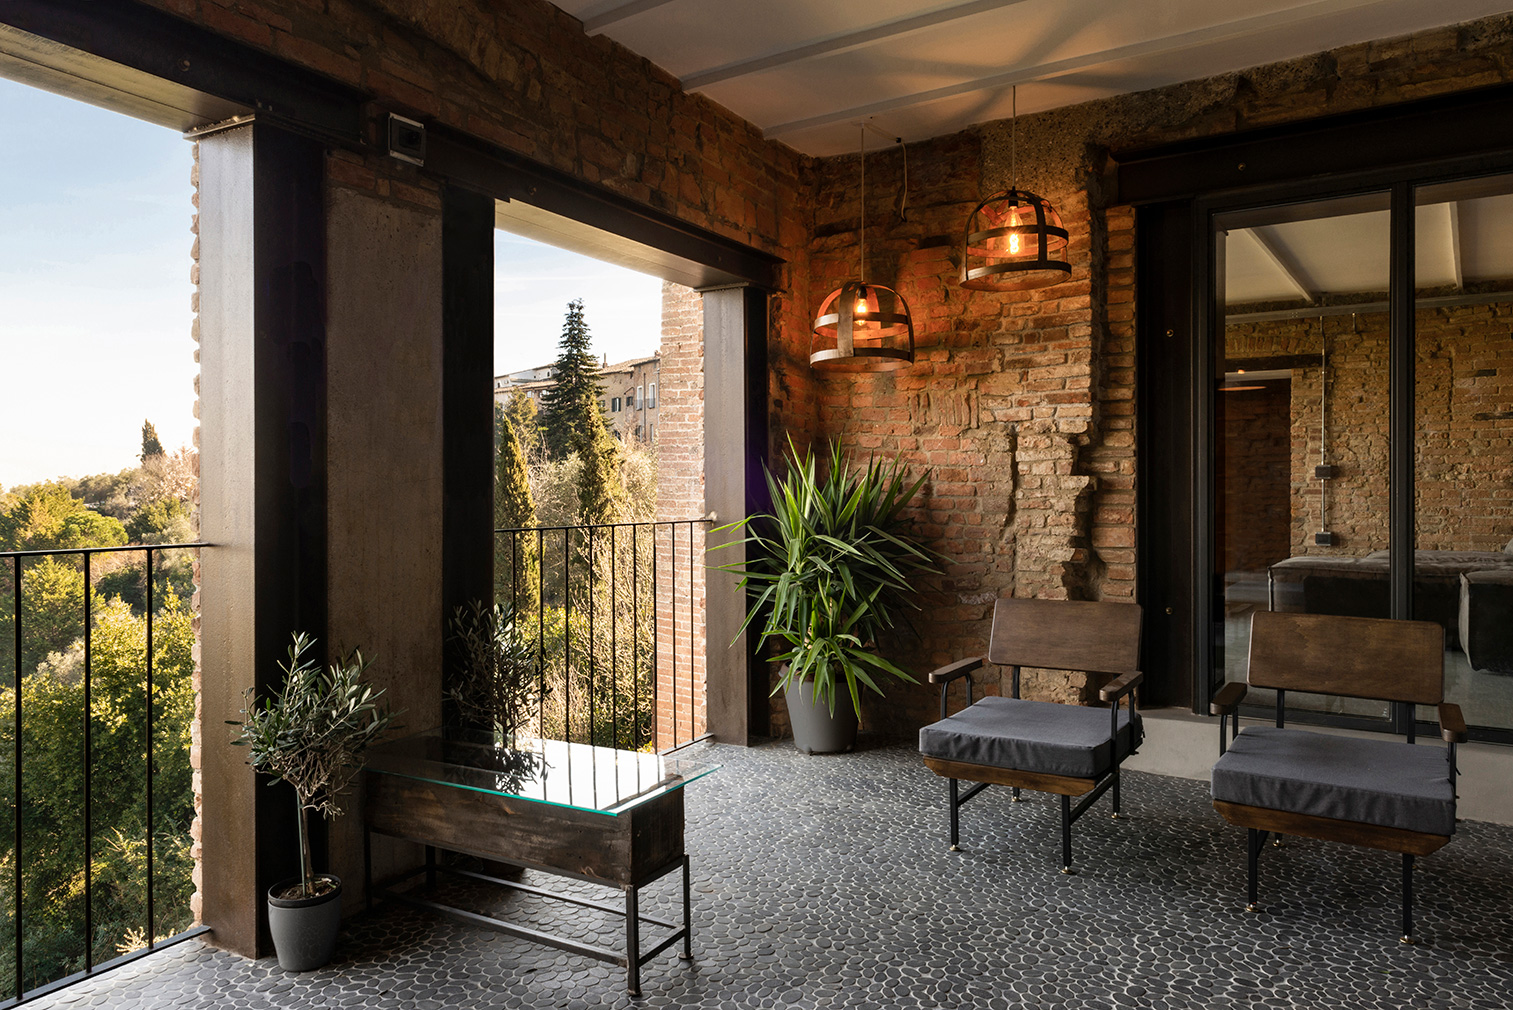 Pebbled floors and red brick walls are on show in the shaded balcony area